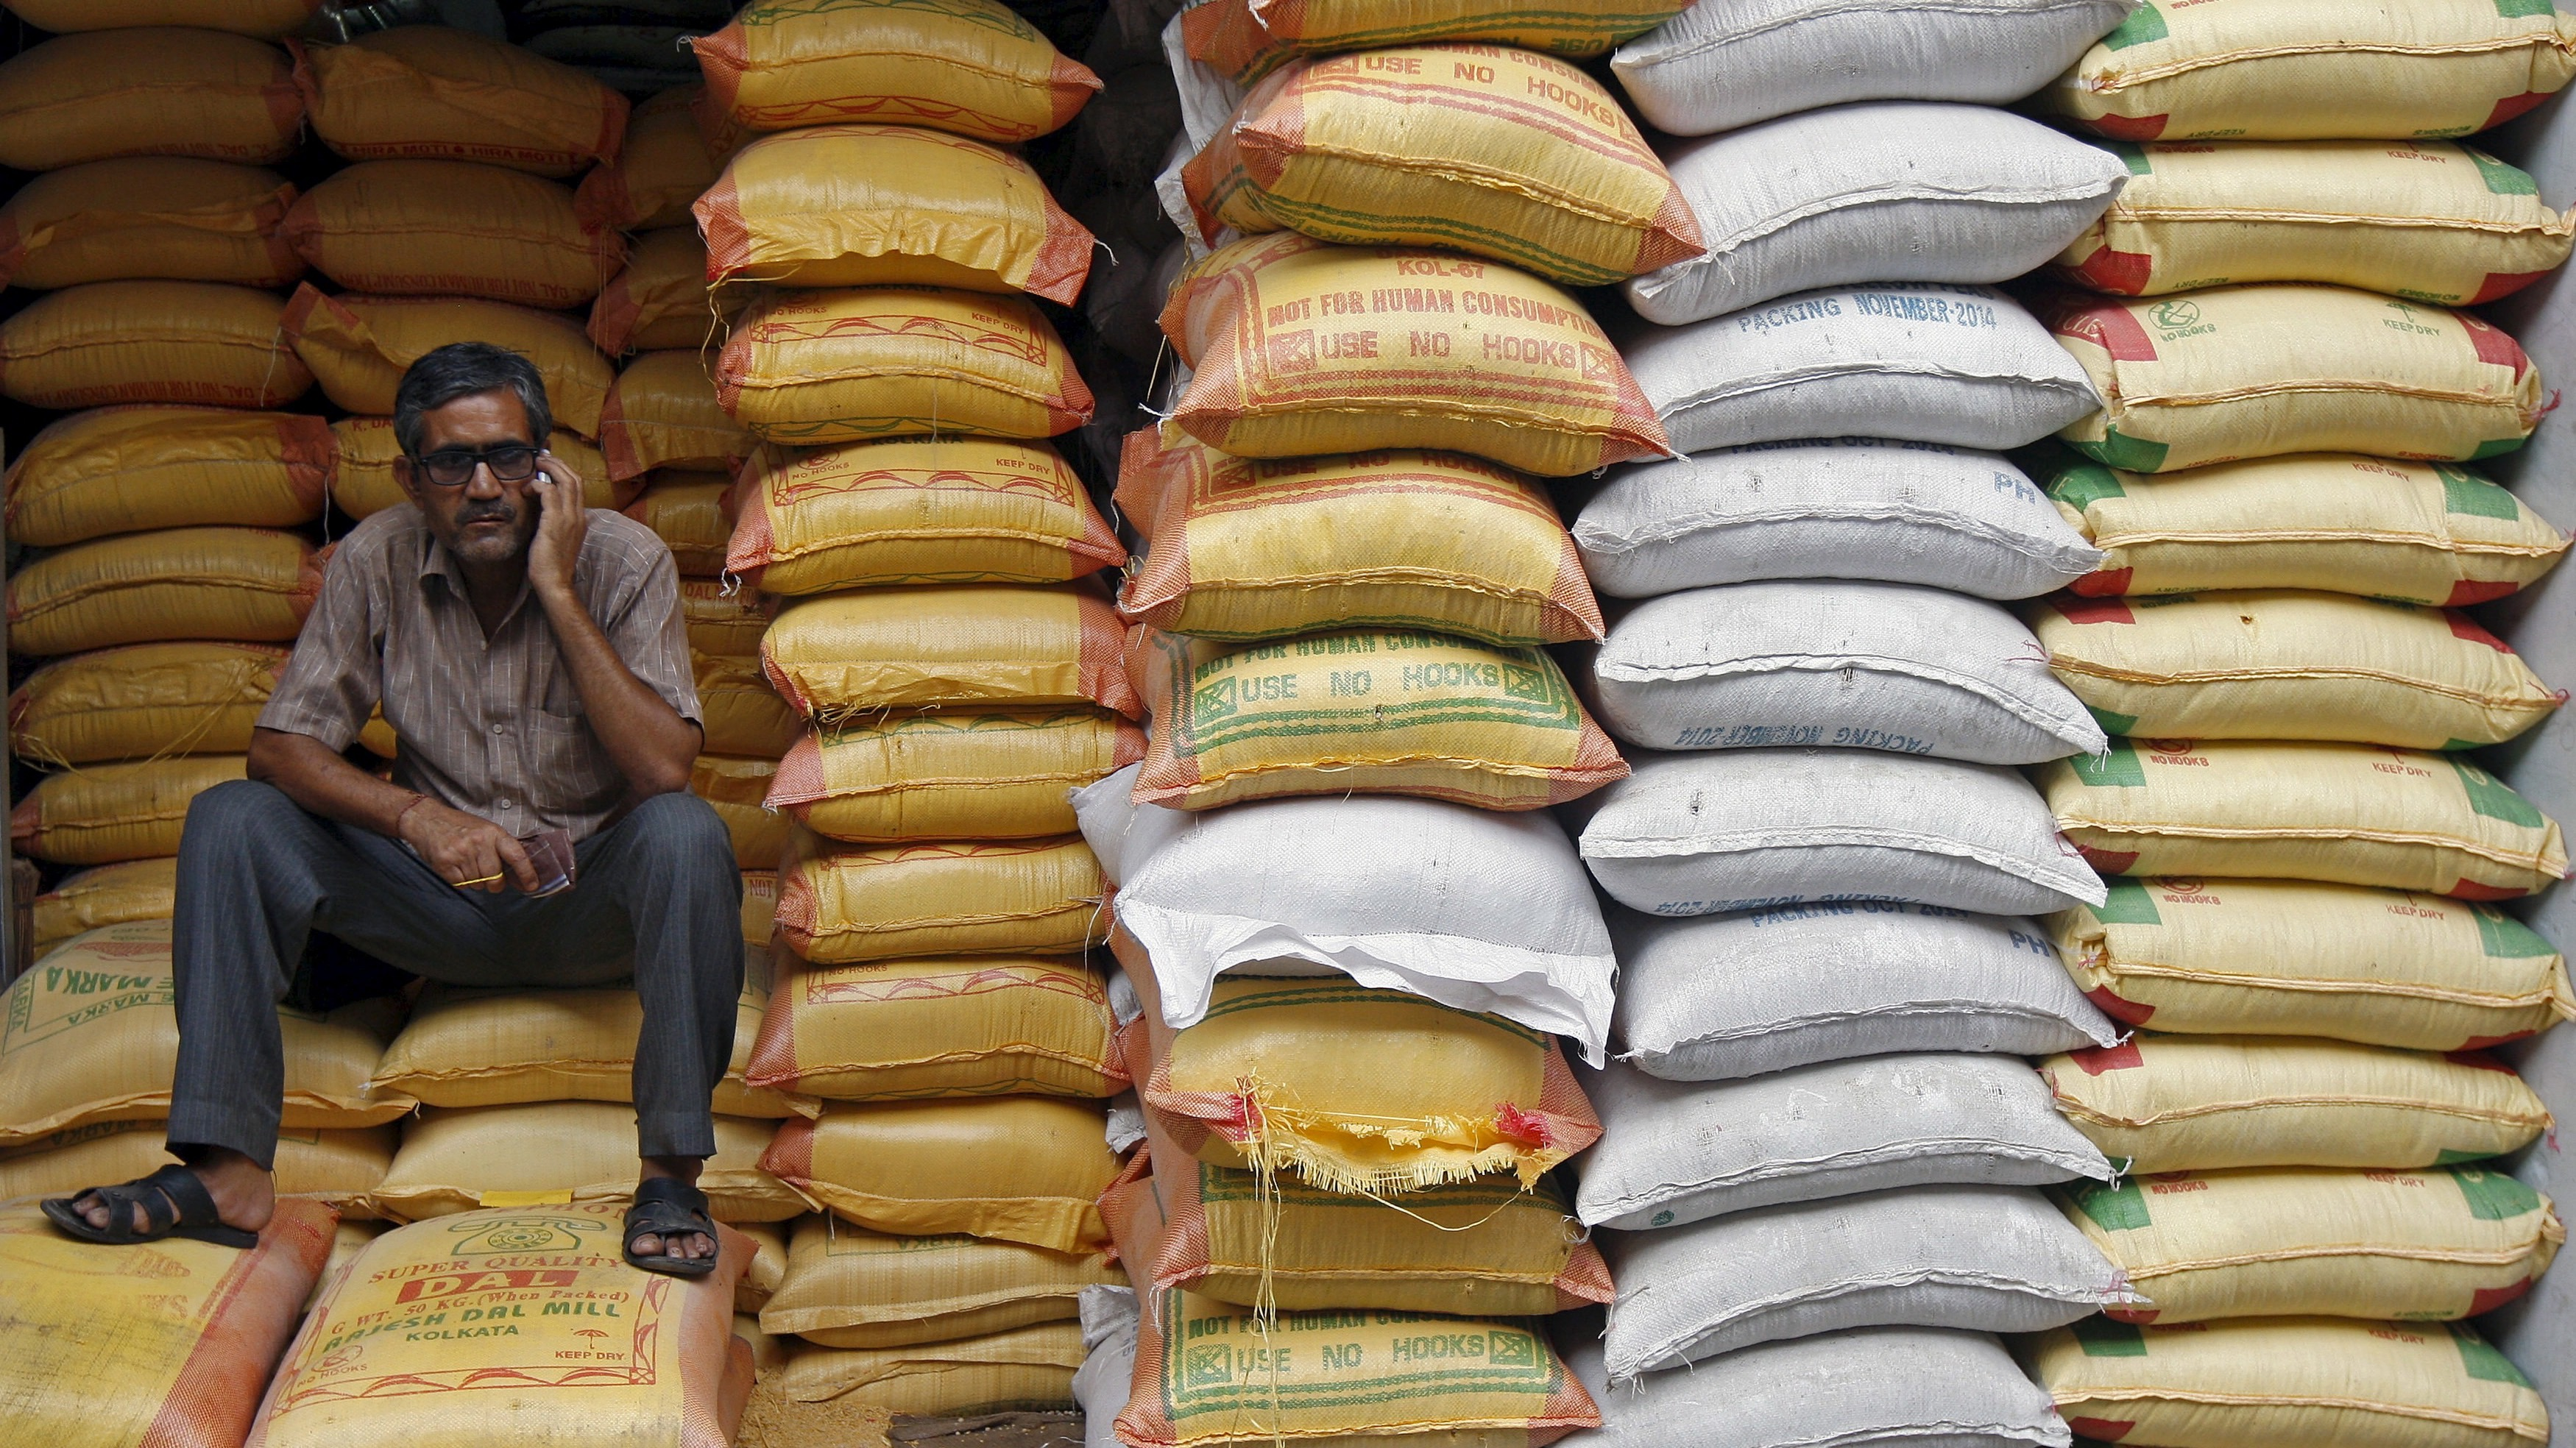 A worker speaks on a mobile phone as he sits inside a shop selling cereal, grains, and pet food, in Kolkata April 15, 2015. India's annual wholesale prices declined at their fastest pace in at least nine years in March on cooling oil and manufacturing costs, reflecting trends that could give the central bank room to make further interest rate cuts. REUTERS/Rupak De Chowdhuri - RTR4XFXC